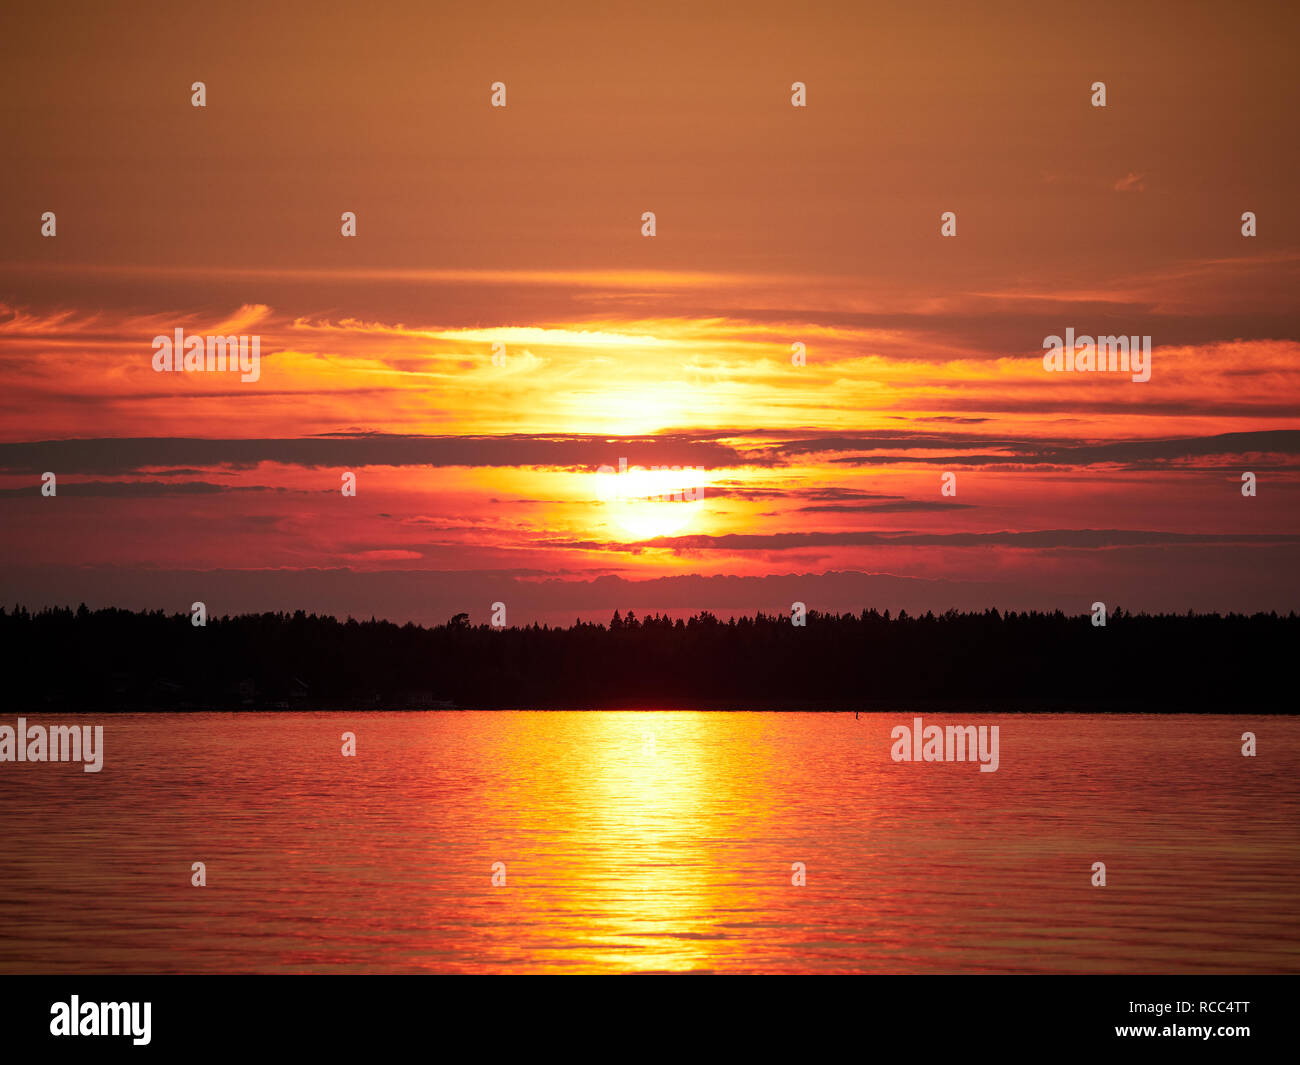 Red sunset sky with the sun and colorful clouds above a peaceful sea in  Vaasa, Finland. The bright disk of the sun is partly hidden by the clouds. - Stock Image